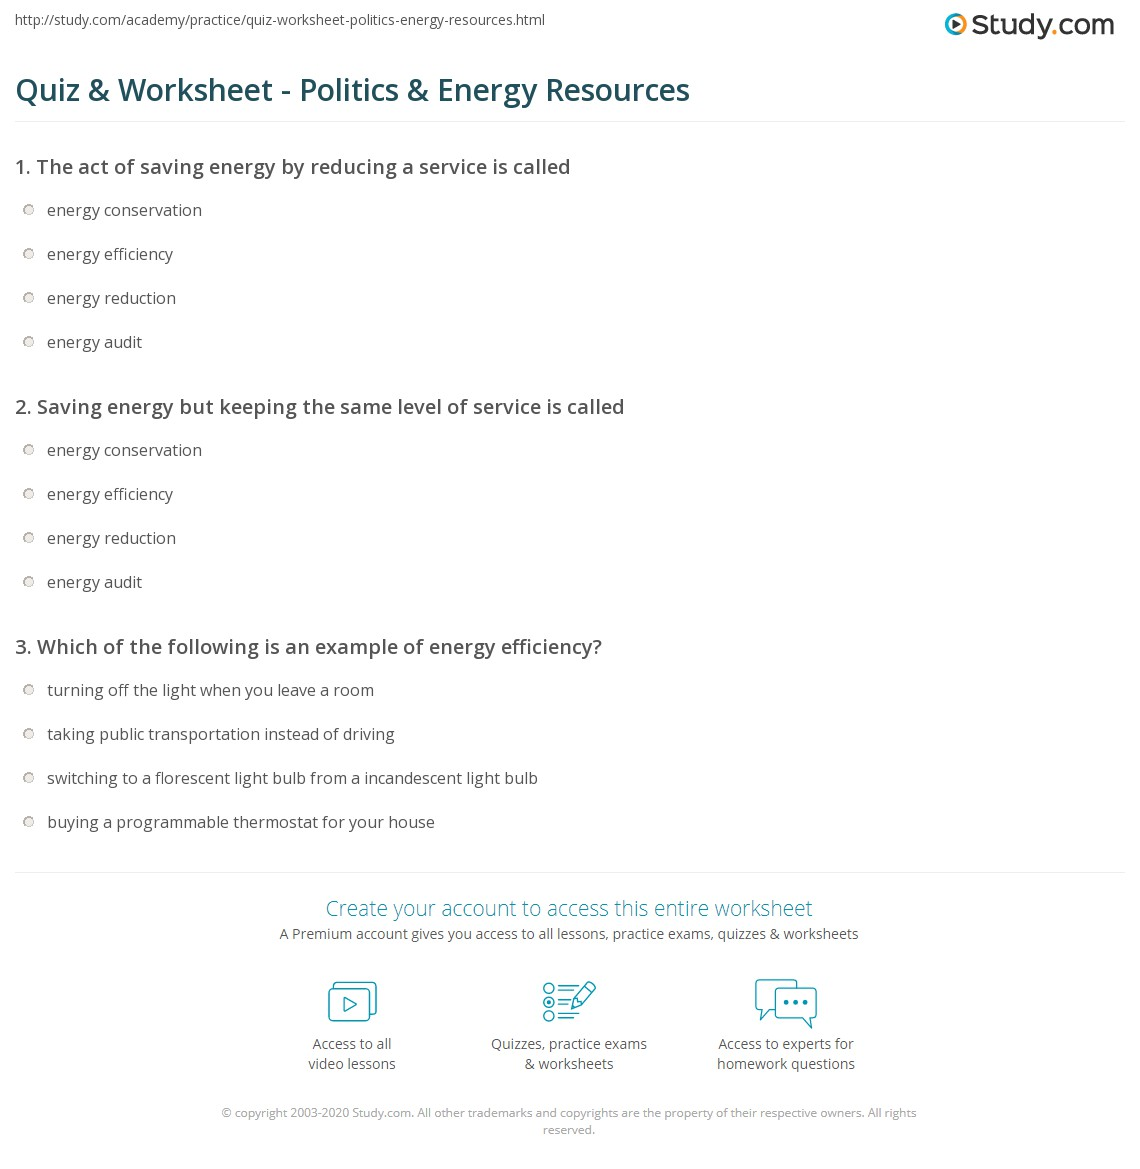 Quiz & Worksheet - Politics & Energy Resources | Study.com